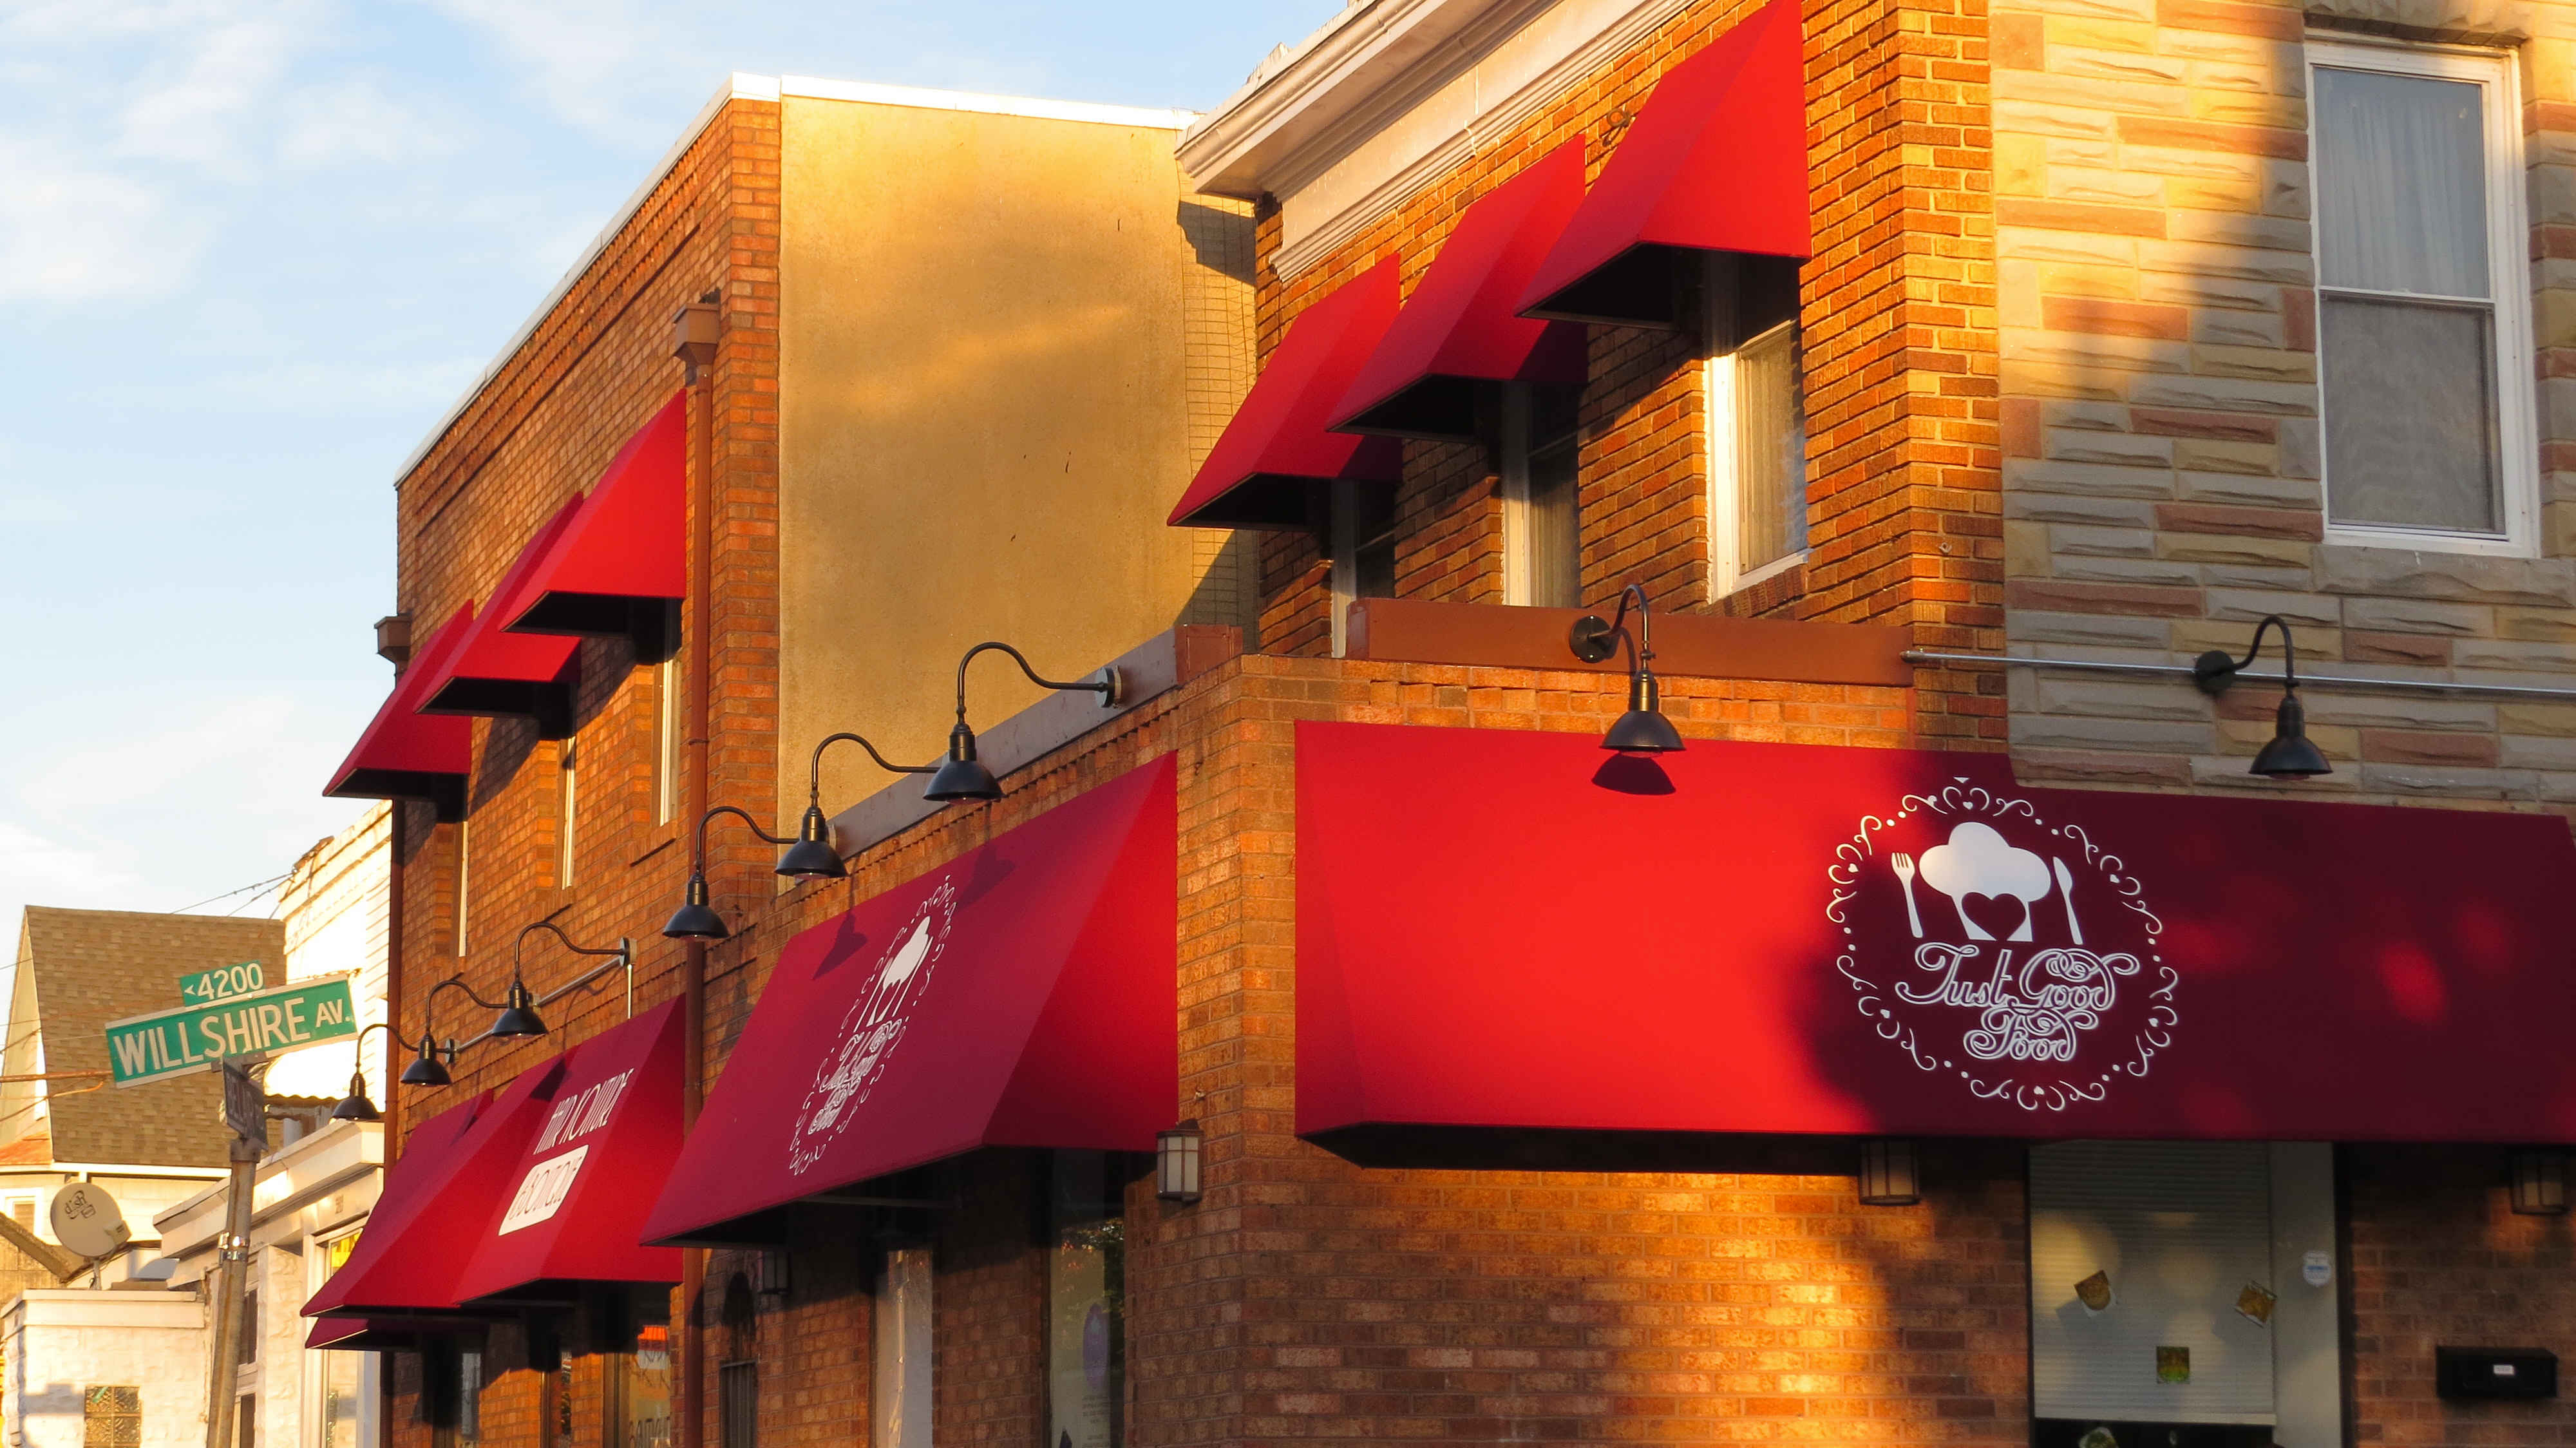 Call A Hoffman Awning in Baltimore 410-685-5687